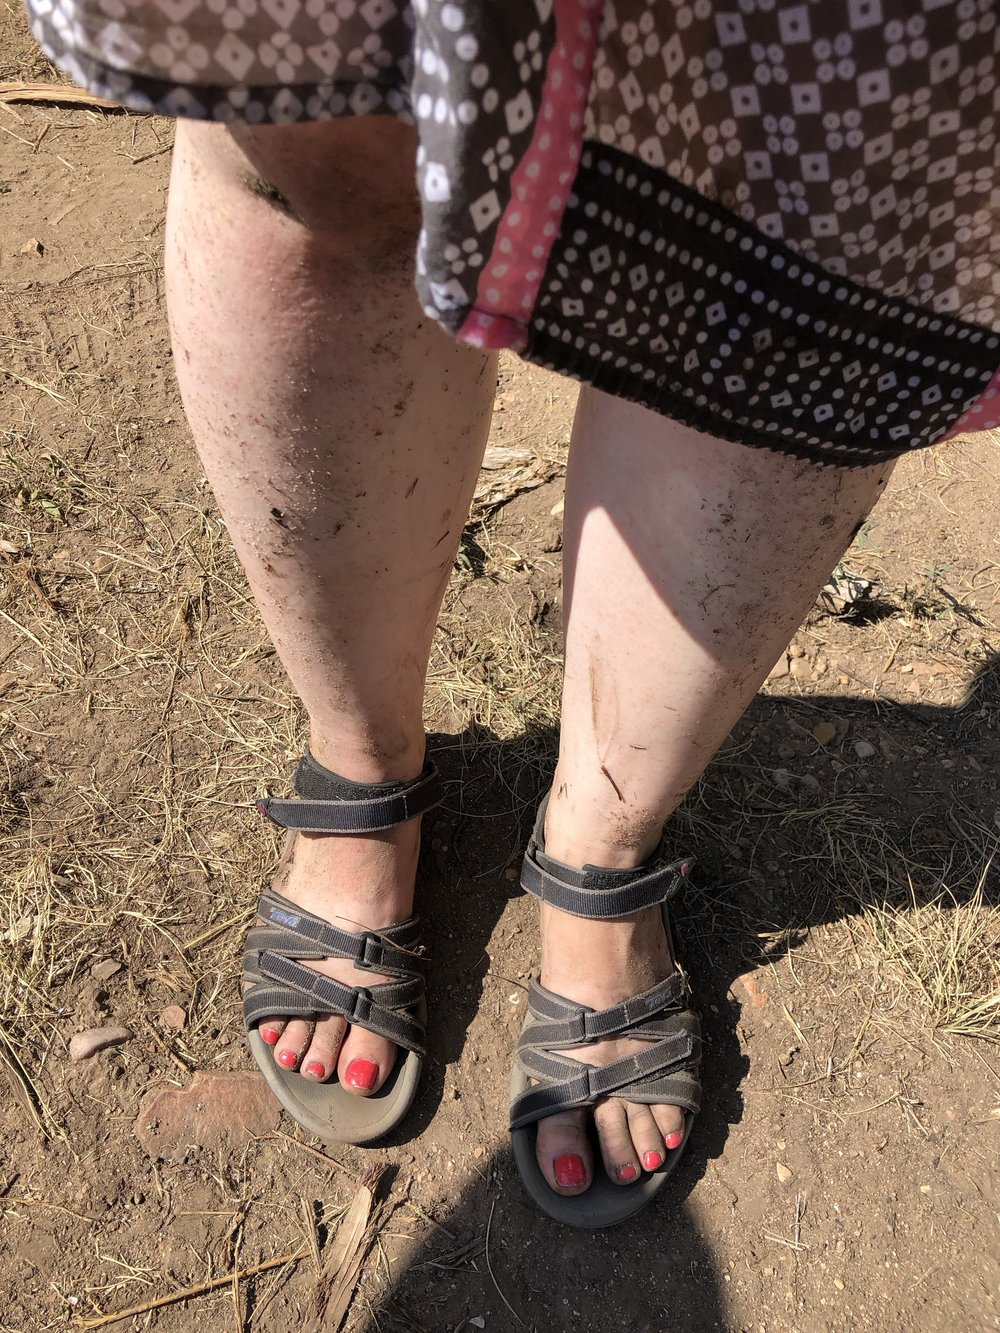 Unshaved, dirty, grimy legs. Chipped polish and caked mud. Sexy.